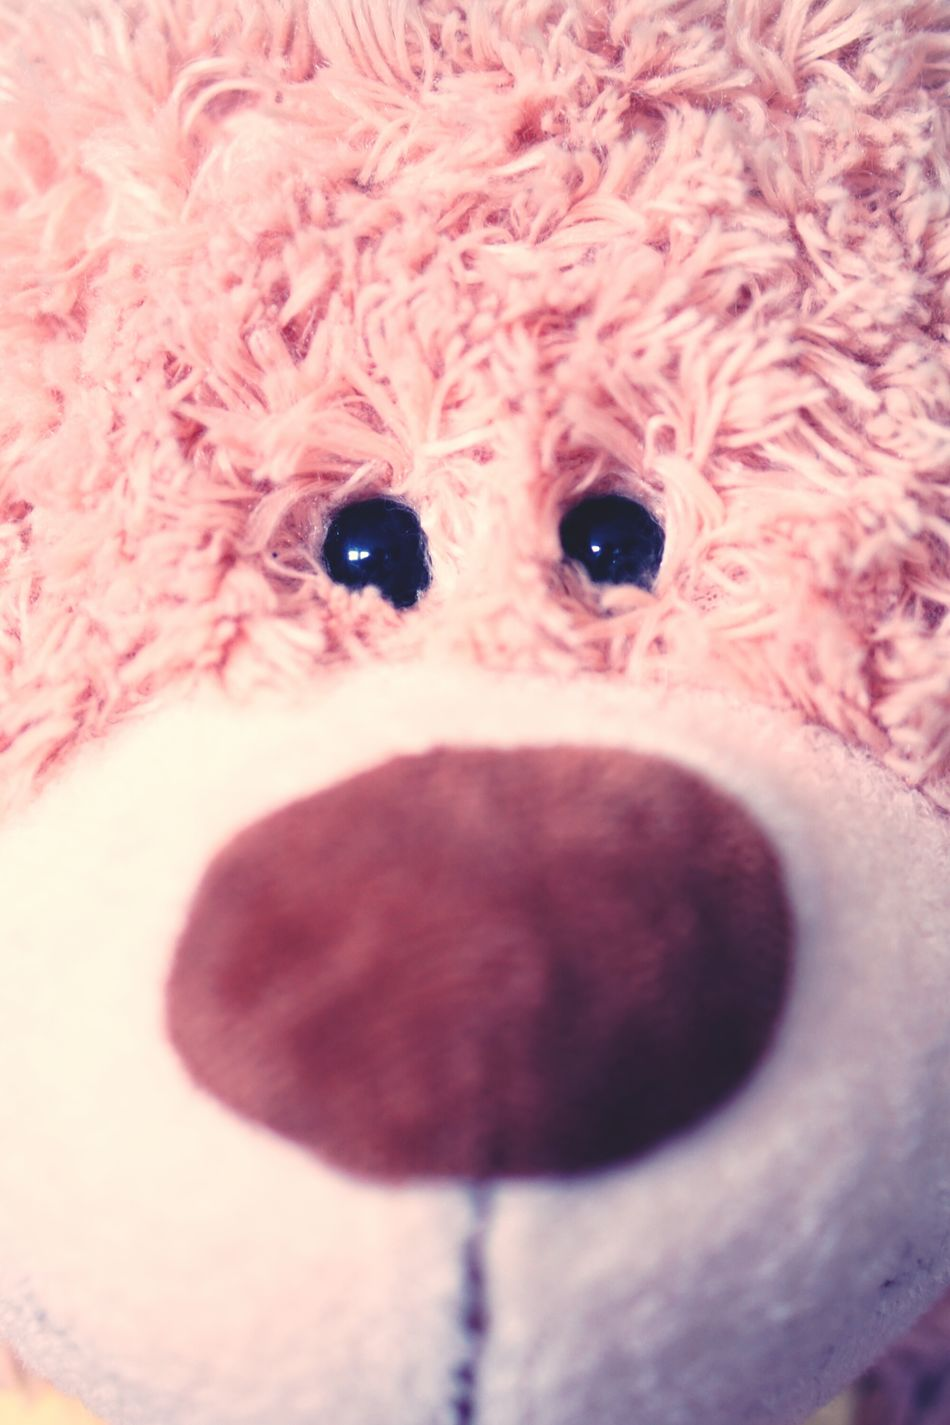 Nose-up Teddylove Teddy Bear Teddybär Teddy Ear Focus On Foreground Fragility Sweet Sweetness Eyes Are Soul Reflection Eyes Eyes Watching You Eye Nose Soul Soulmate Sweetheart